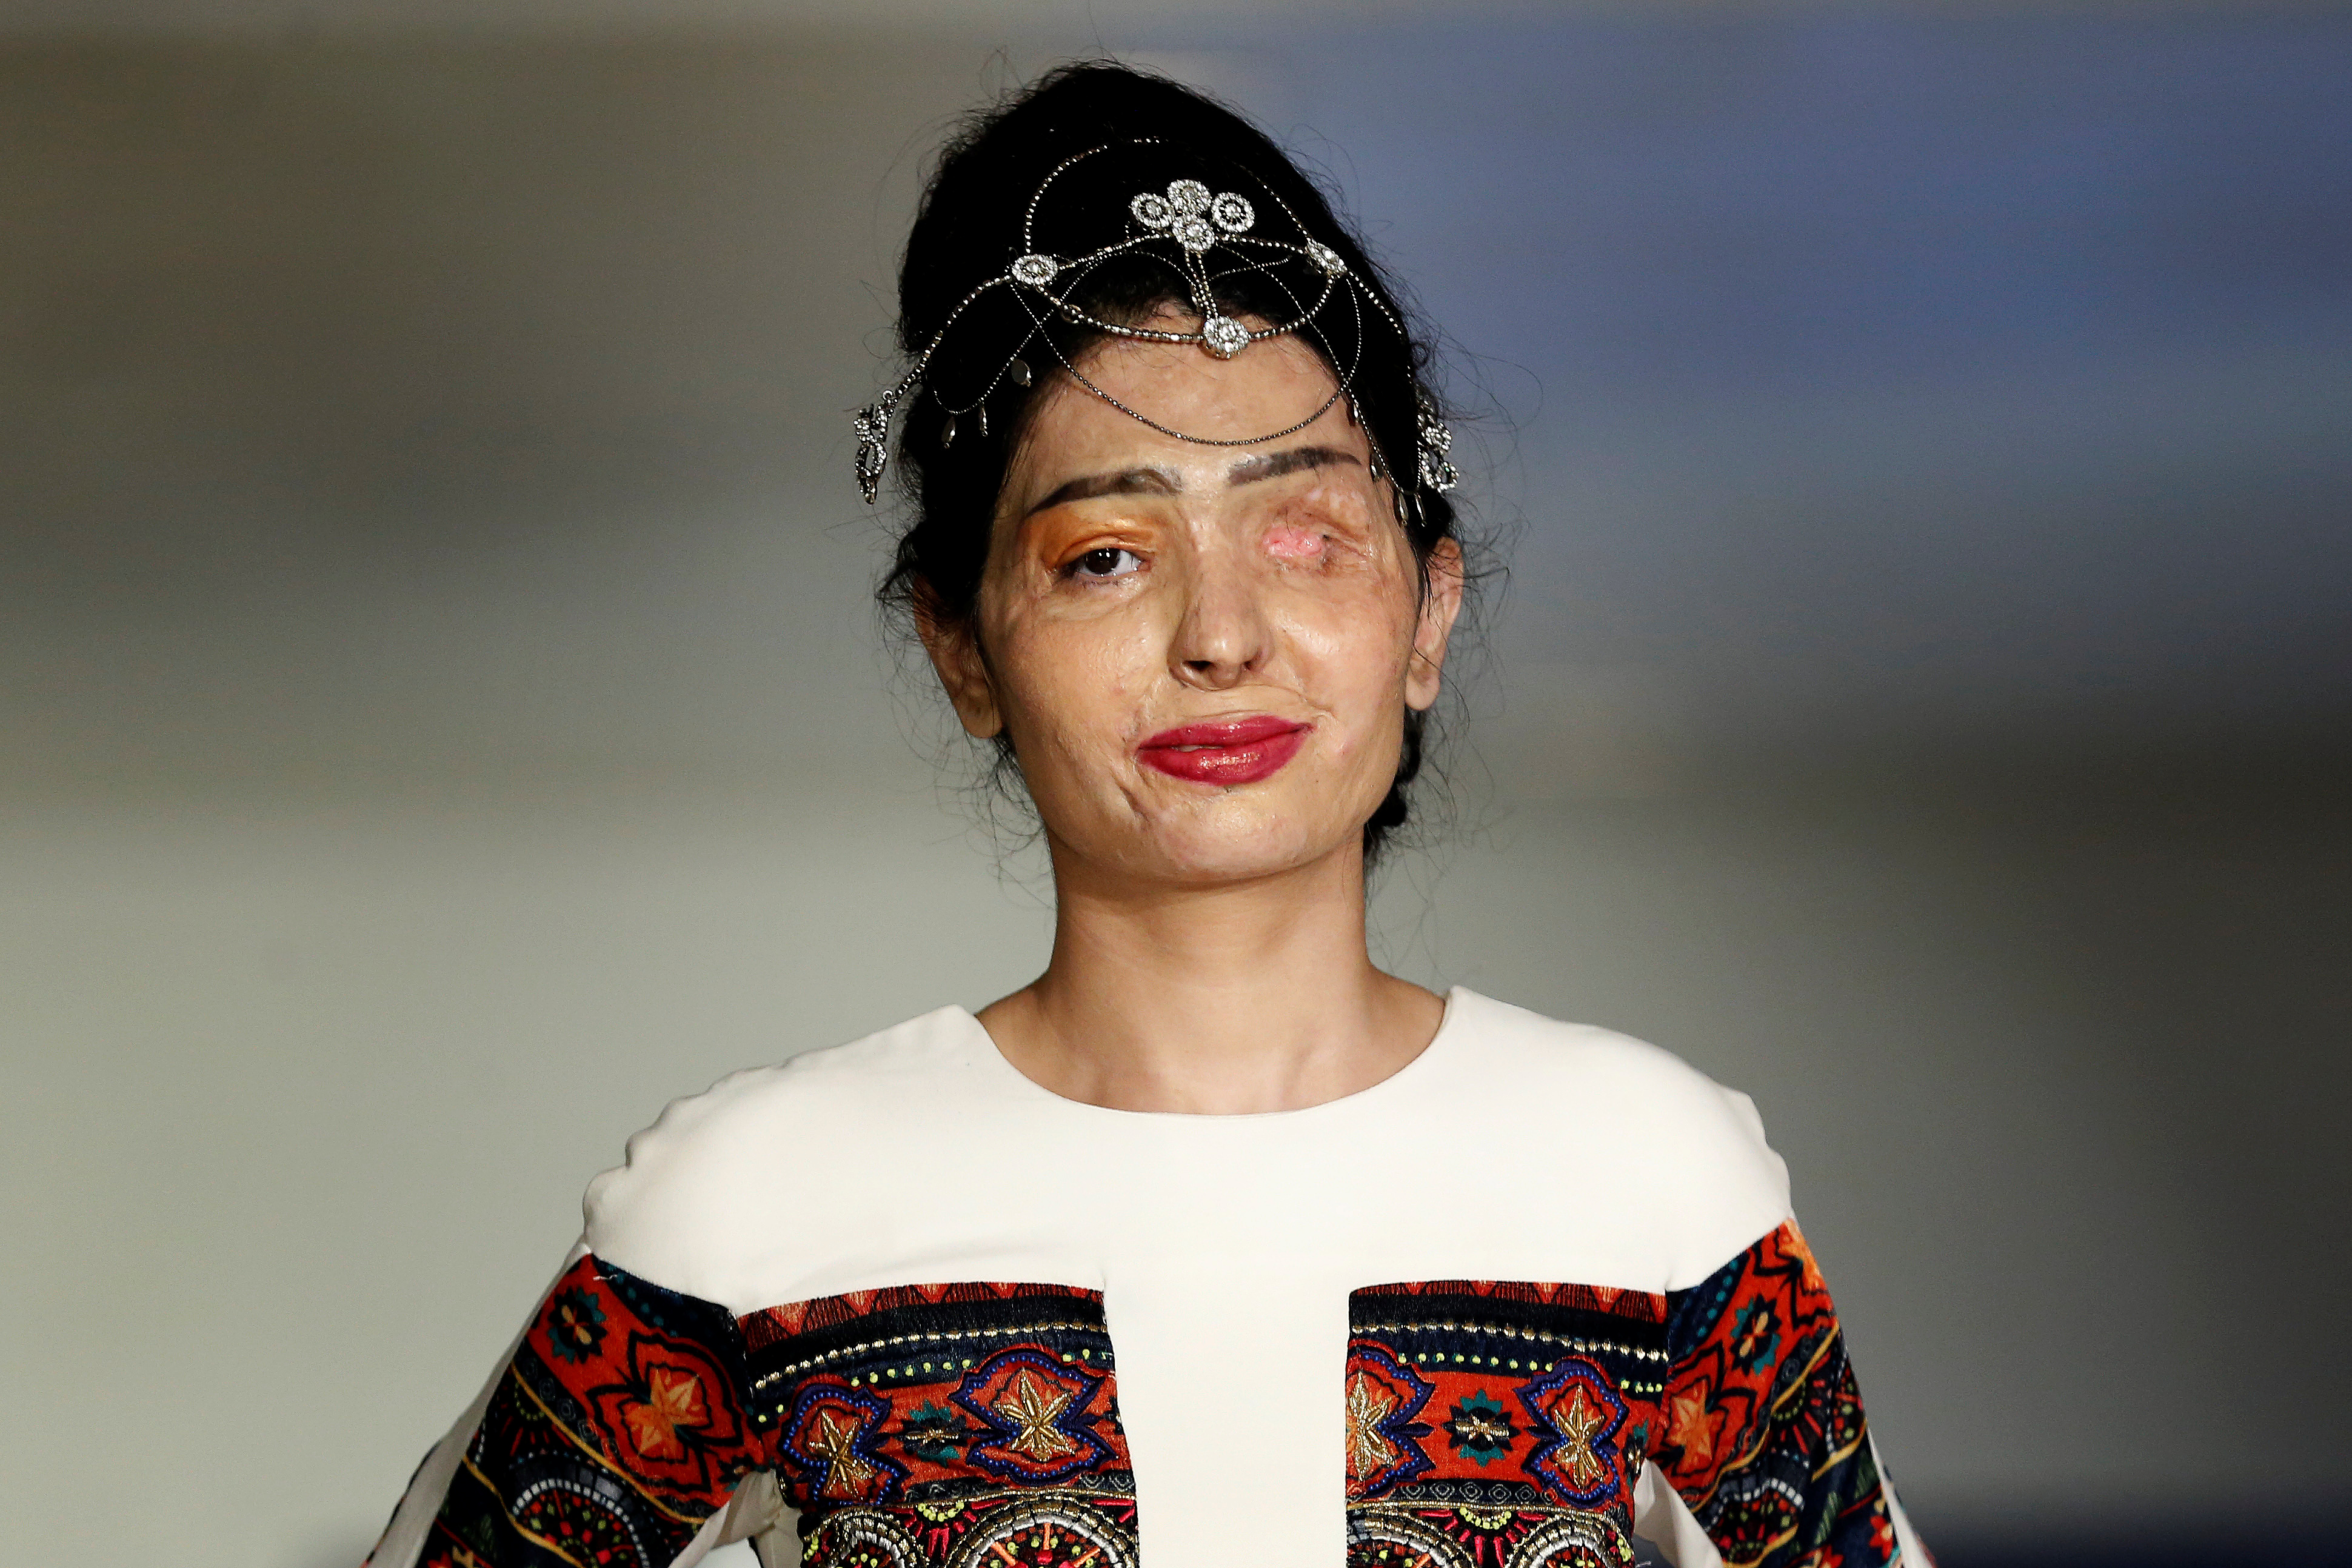 Acid attack survivor reshma qureshi steals the show at new for Modeling jobs nyc